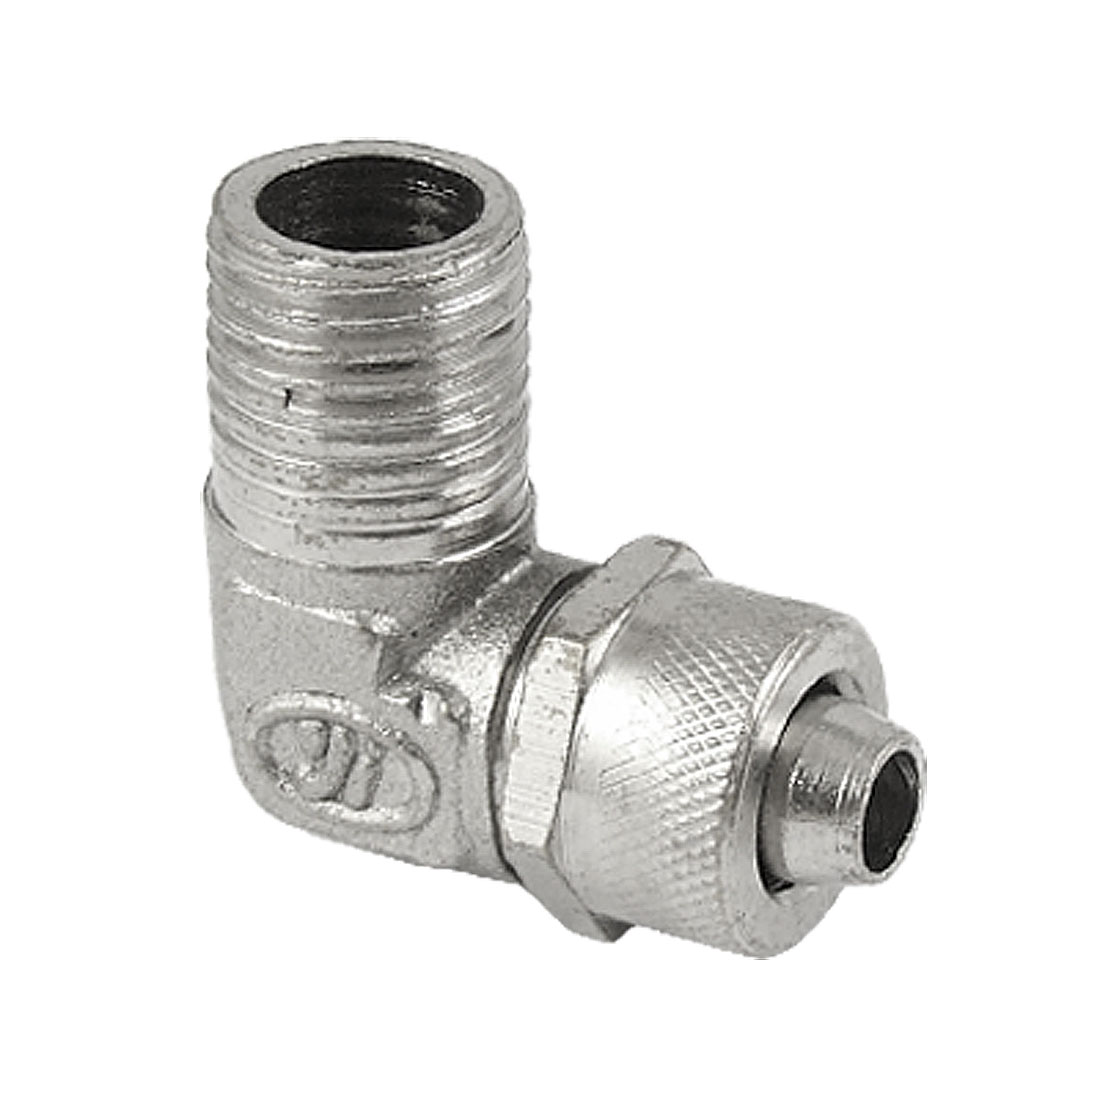 Right Angle 12.5mm Thread Screw Hex Tubing Fitting